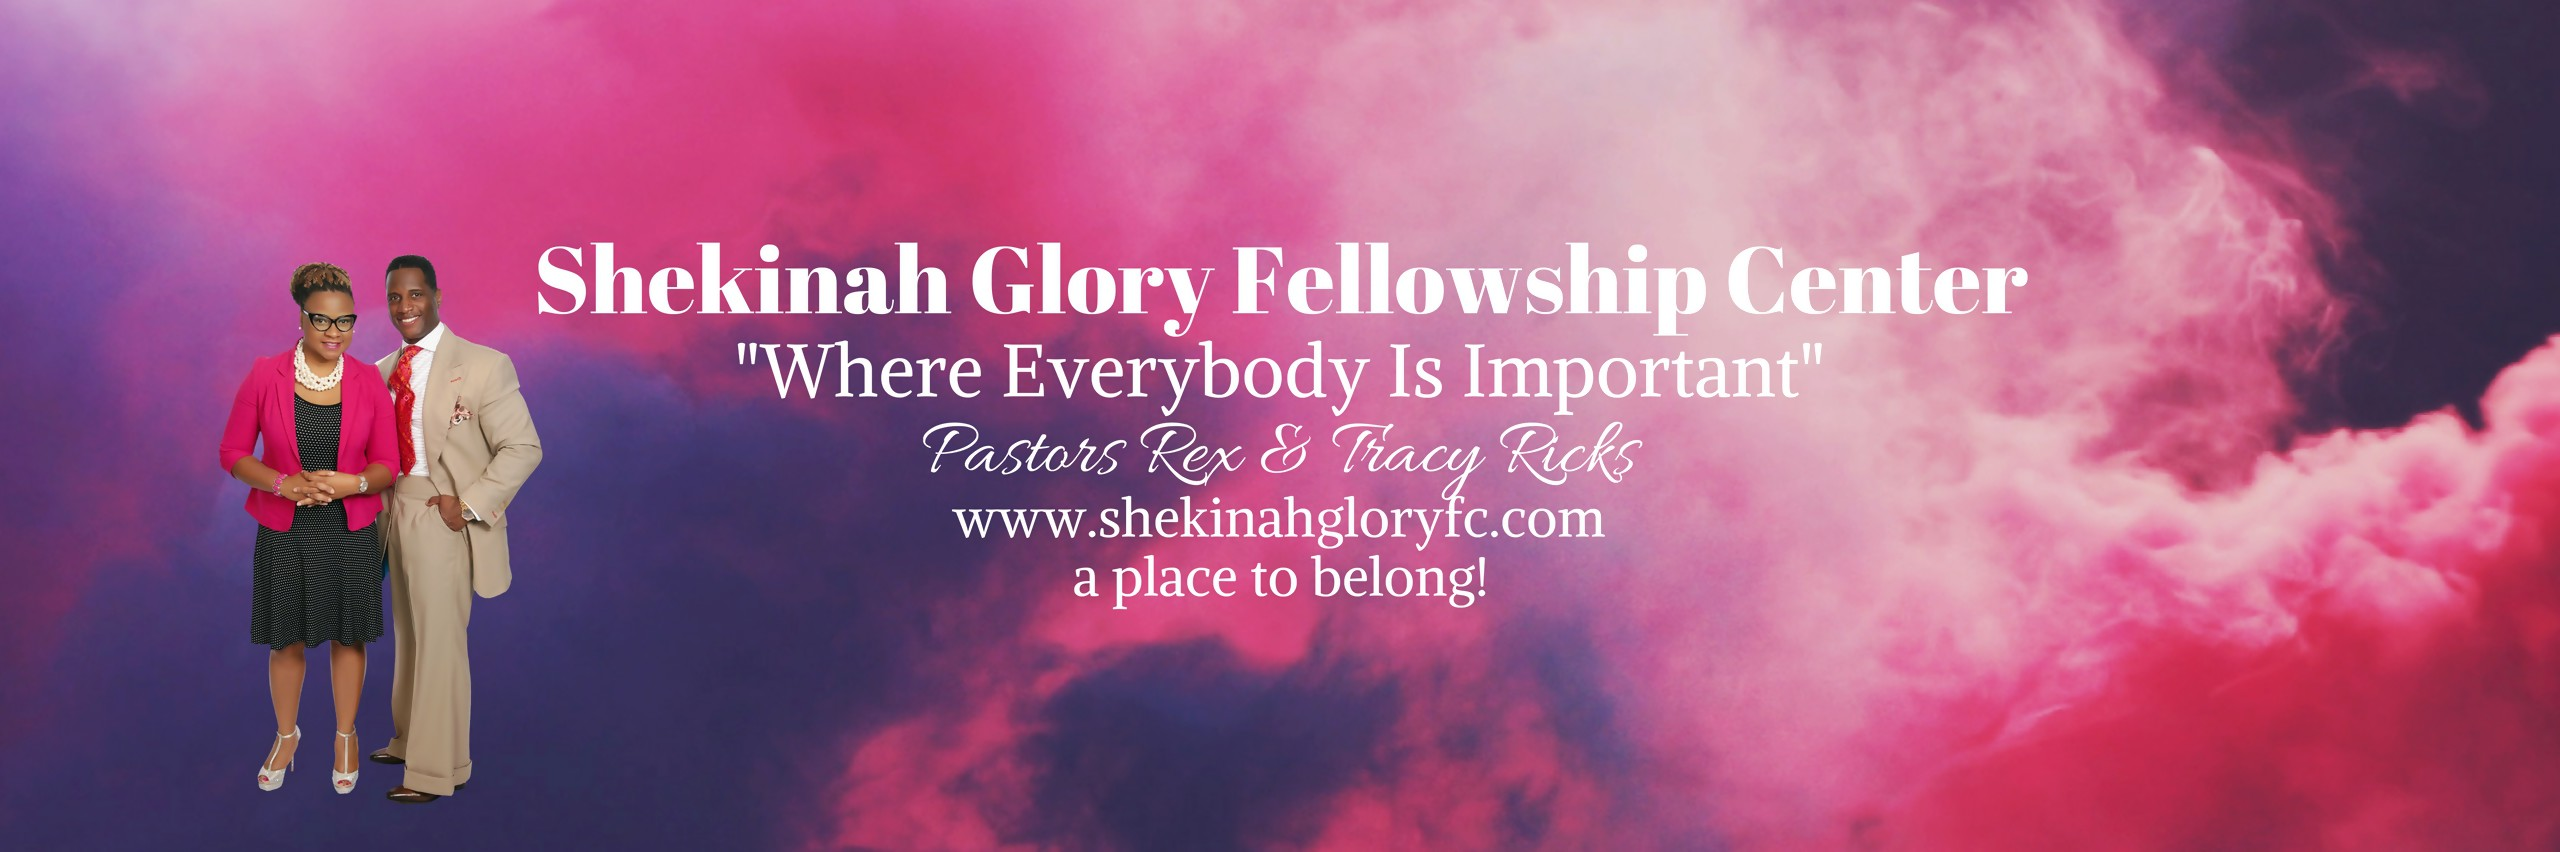 Shekinah Glory Fellowship Center